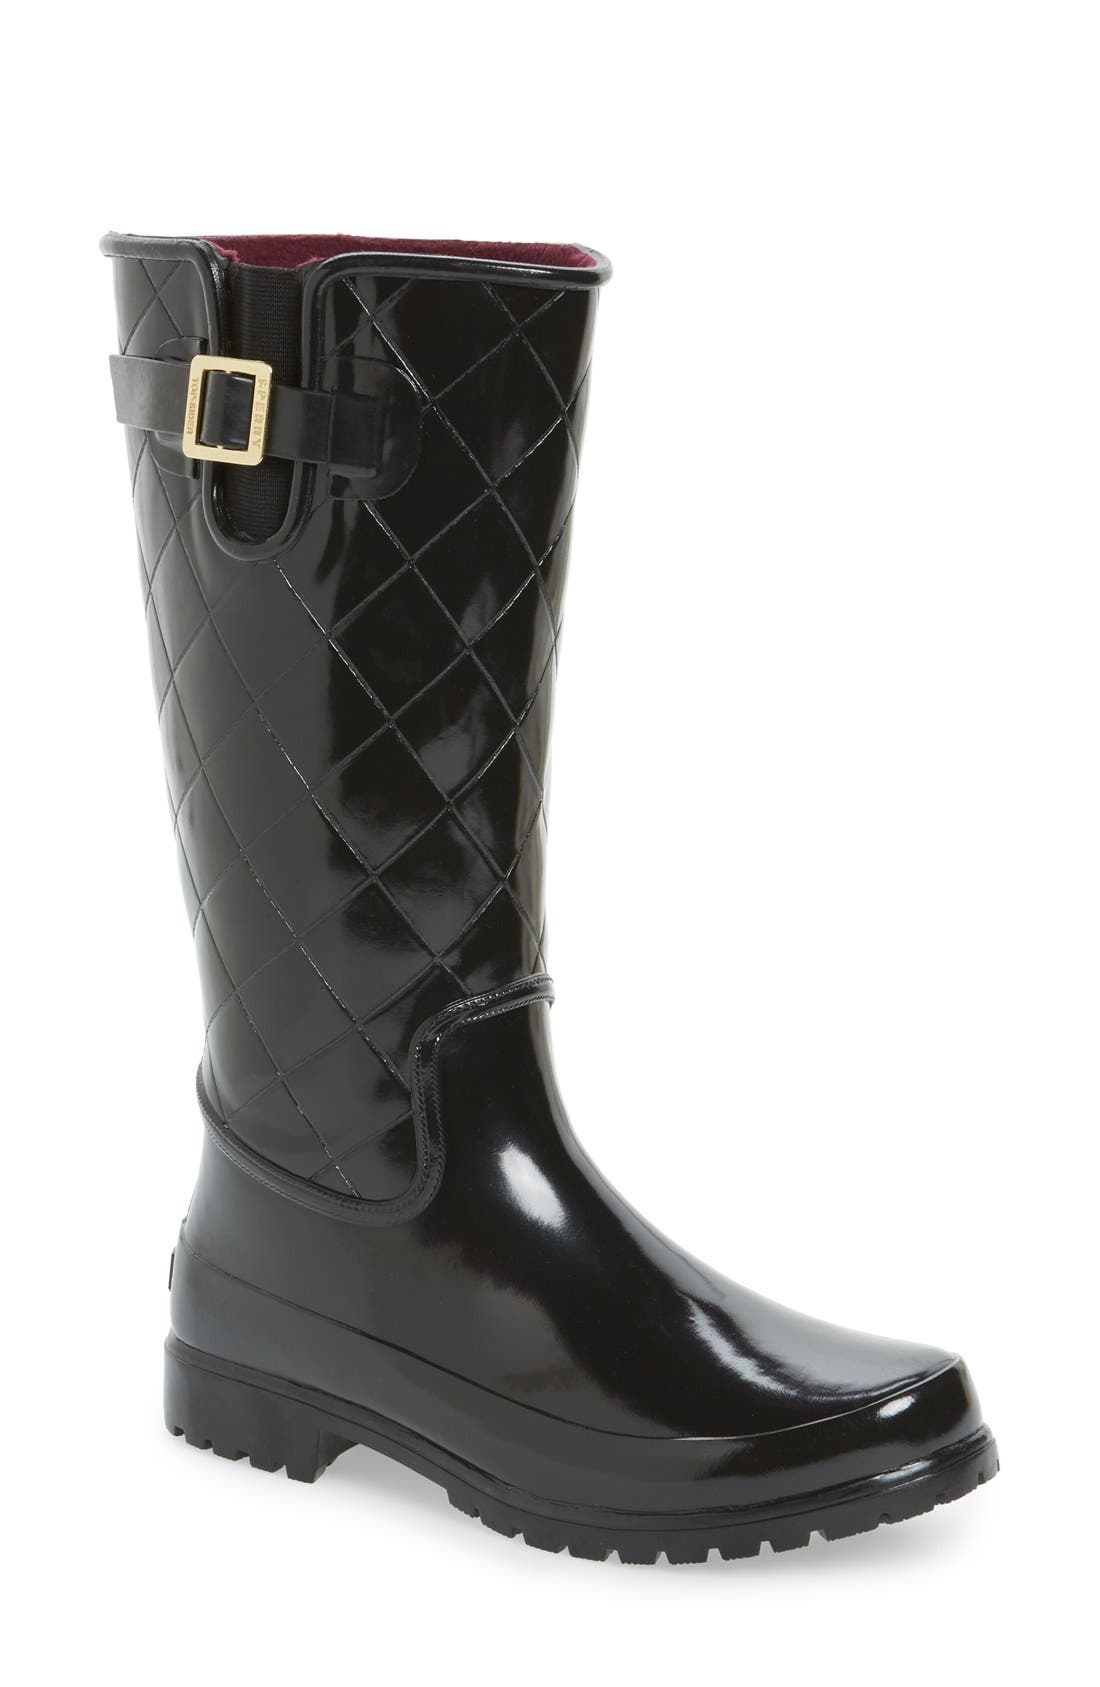 Alternate Image 1 Selected - Sperry Top-Sider® 'Pelican' Tall Rain Boot (Women)